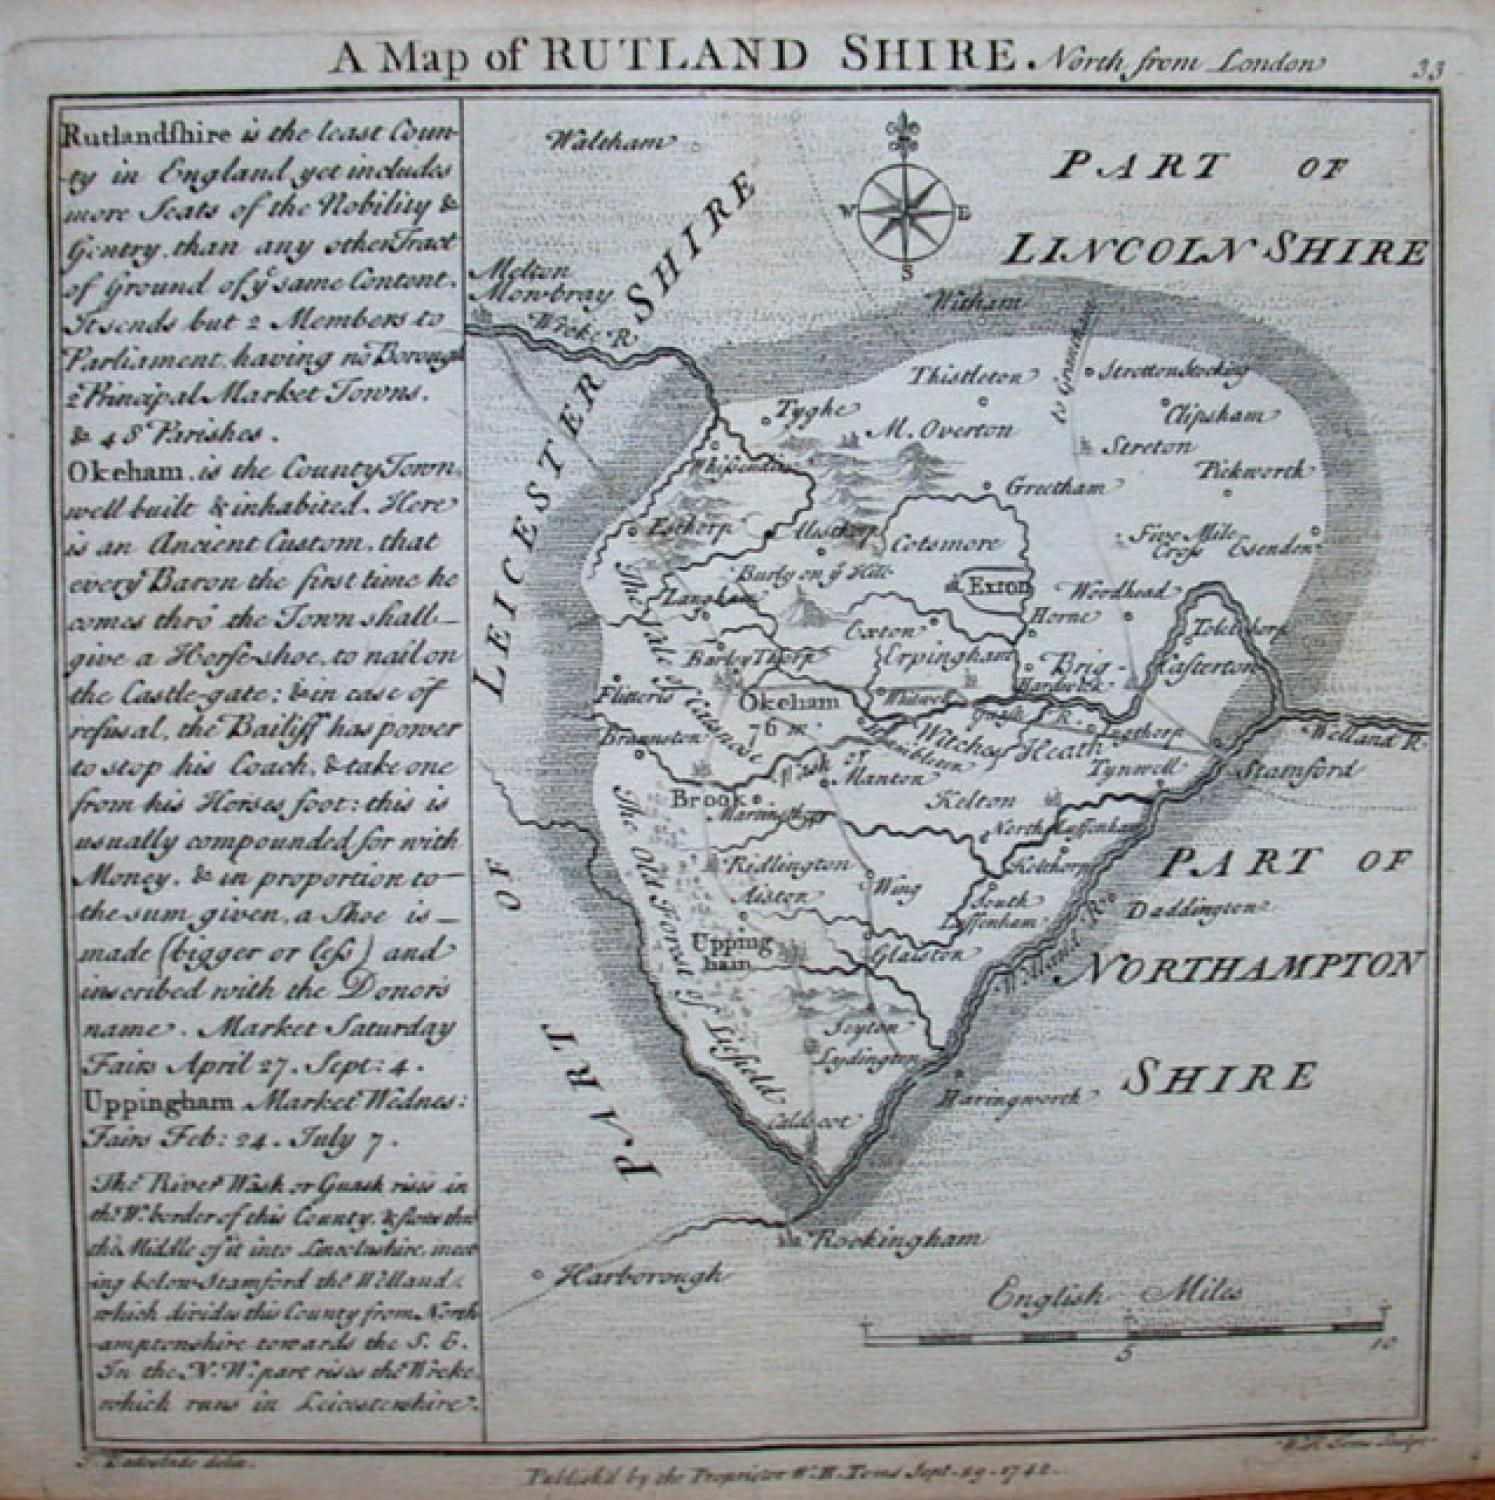 SOLD A Map of Rutland Shire north from London